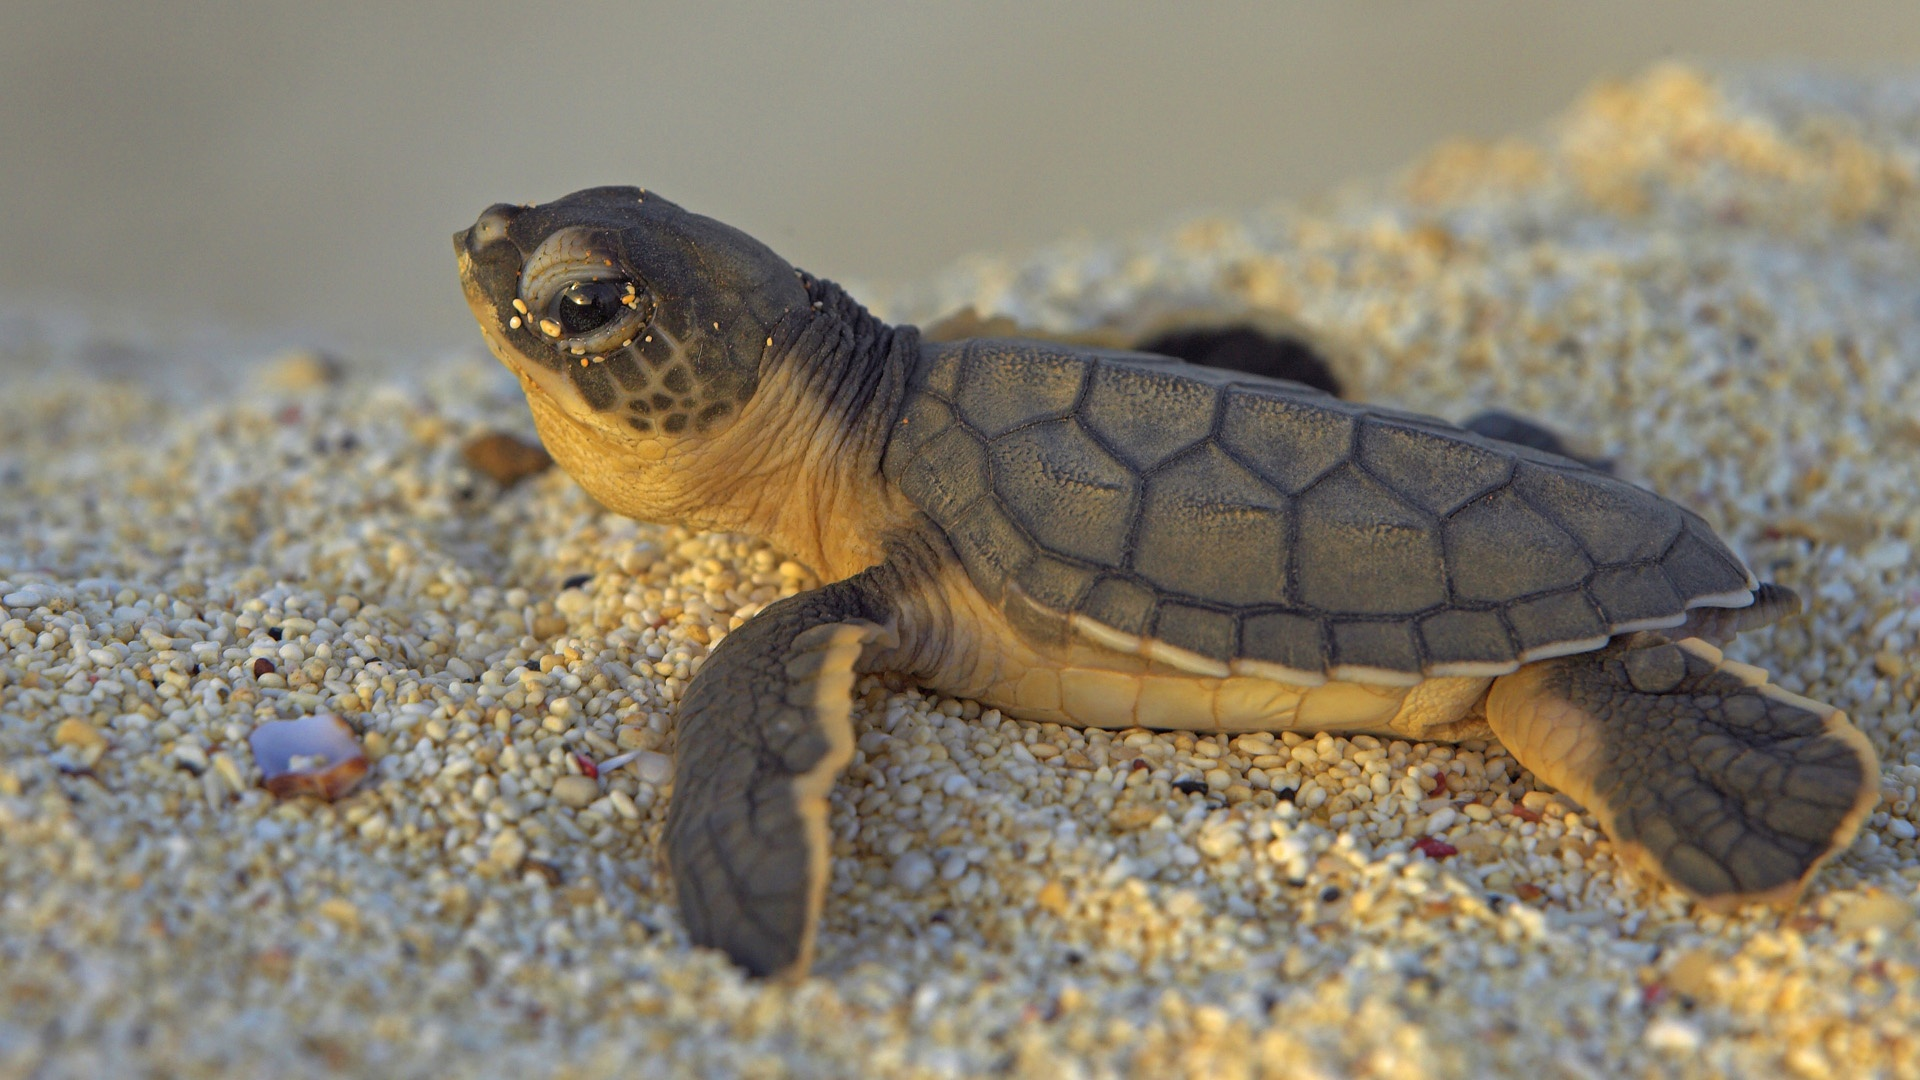 Baby Turtle Wallpapers   1920x1080   534261 1920x1080